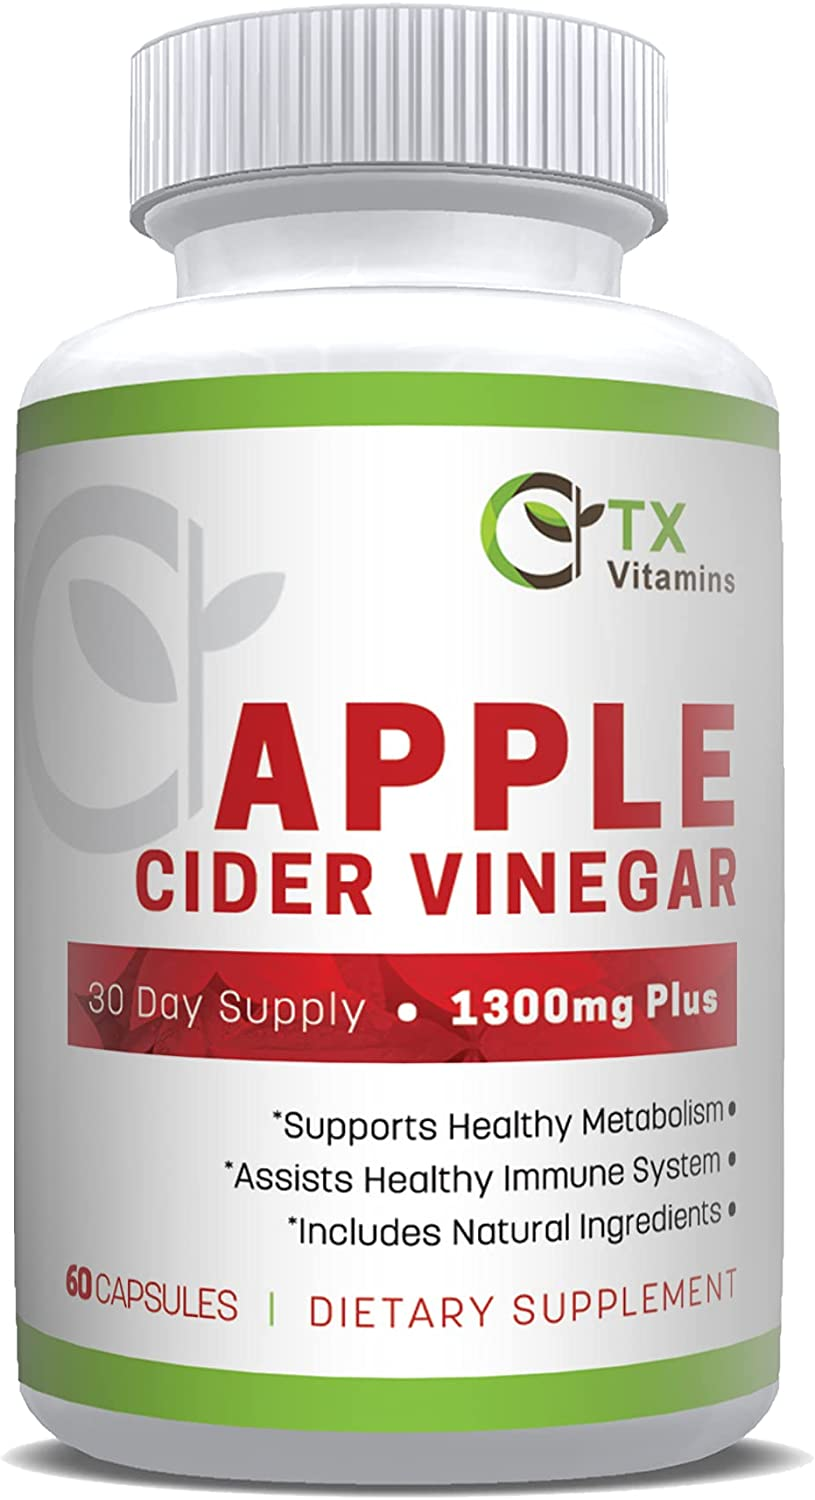 Natural Apple Cider Vinegar - Premium ACV Capsules Supports Indigestion, Detox, Cleanser, & Weight Loss - Supports Heart Health and Boosts Metabolism